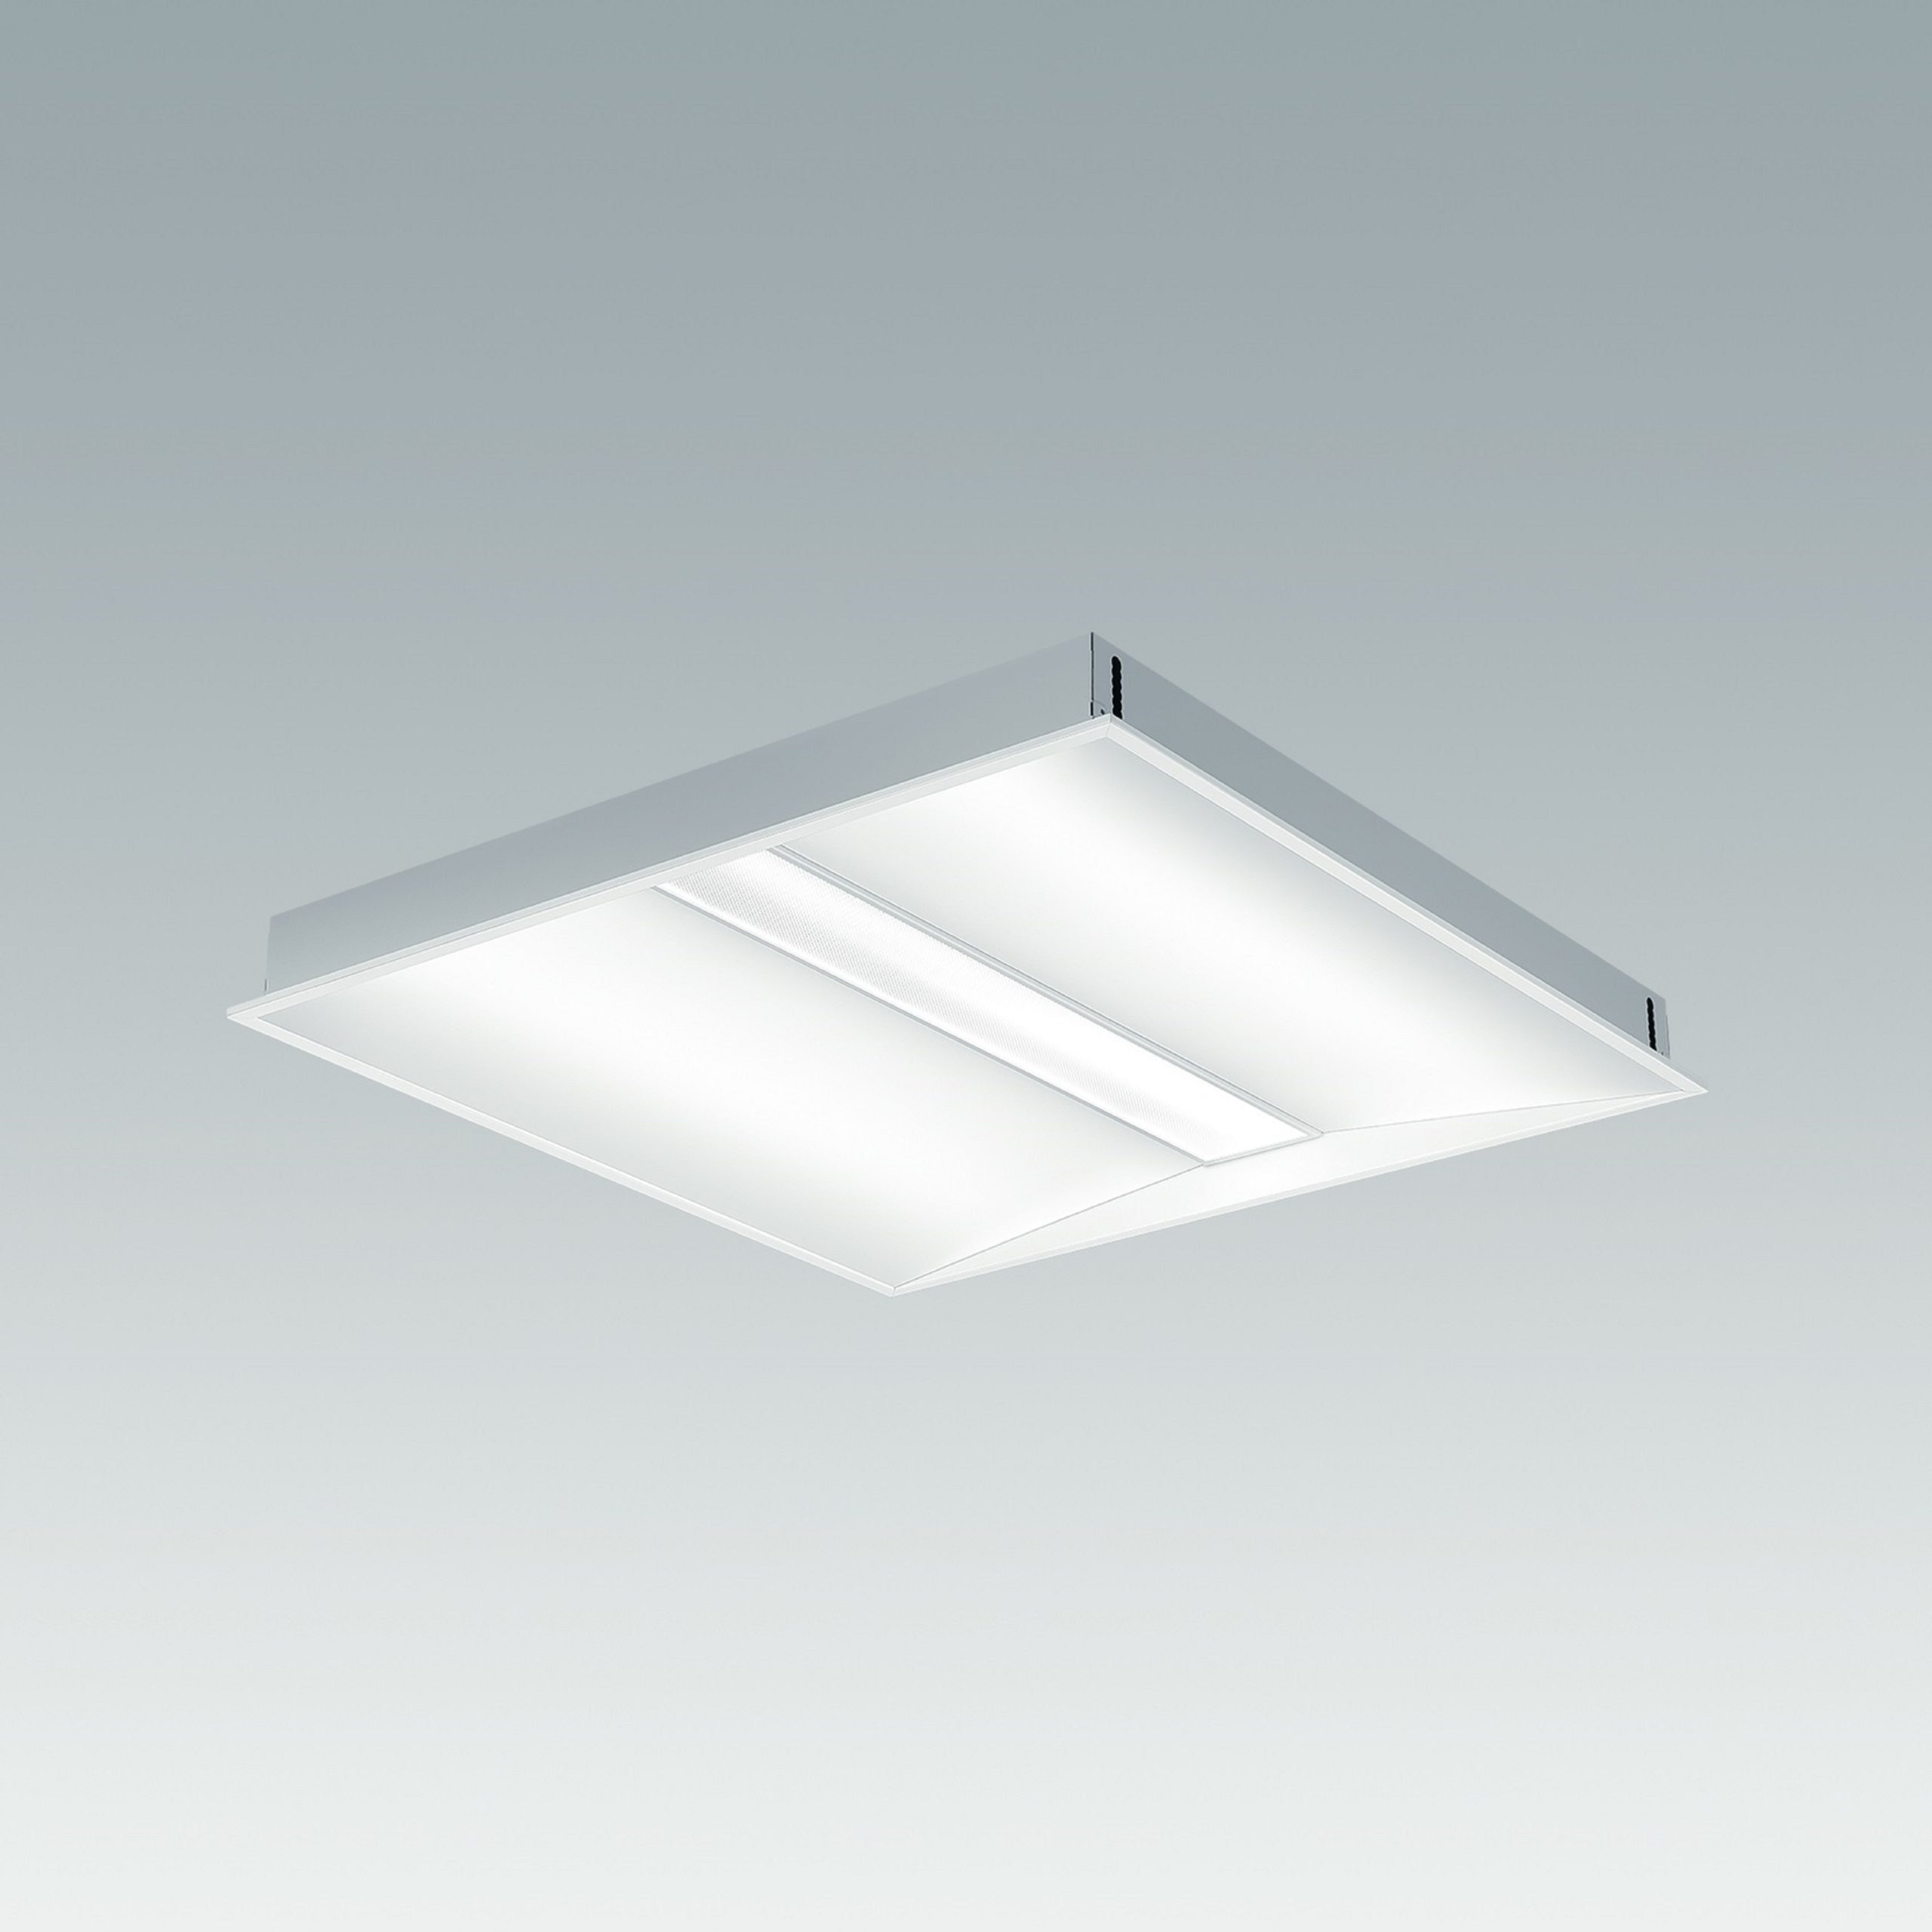 Thorn Lighting launches new recessed ceiling luminaire, IQ Beam